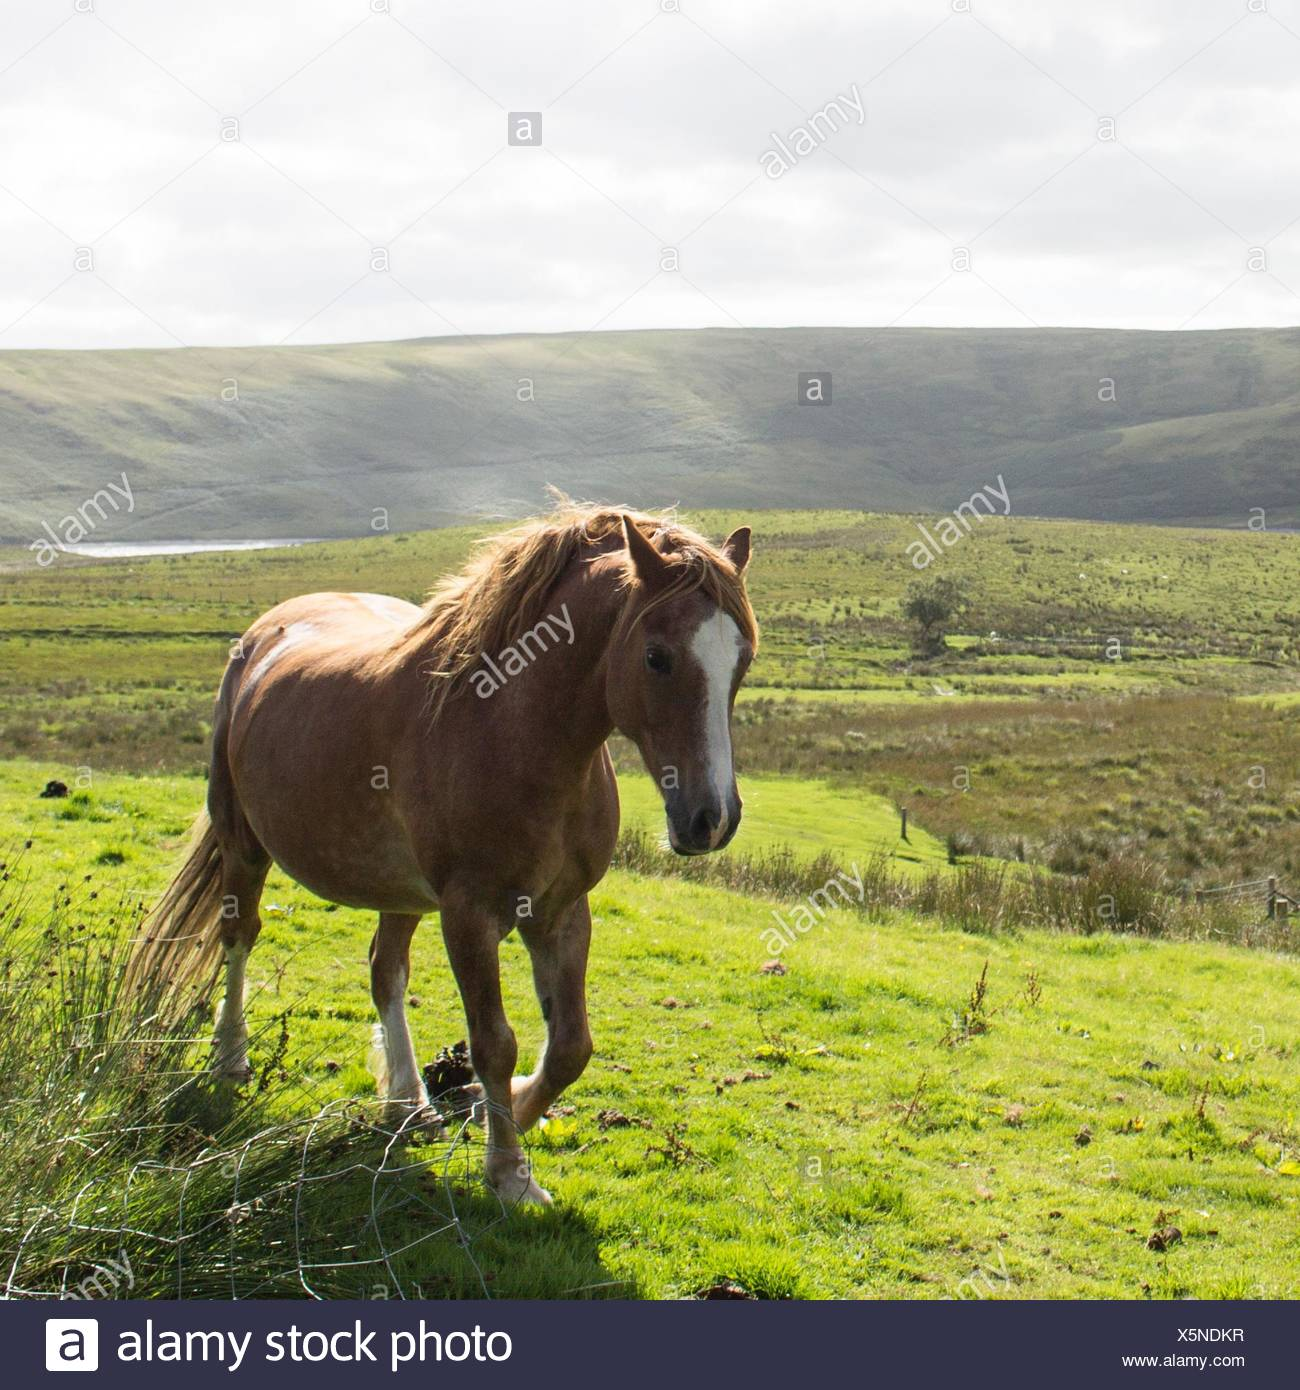 Cheval en campagne Photo Stock